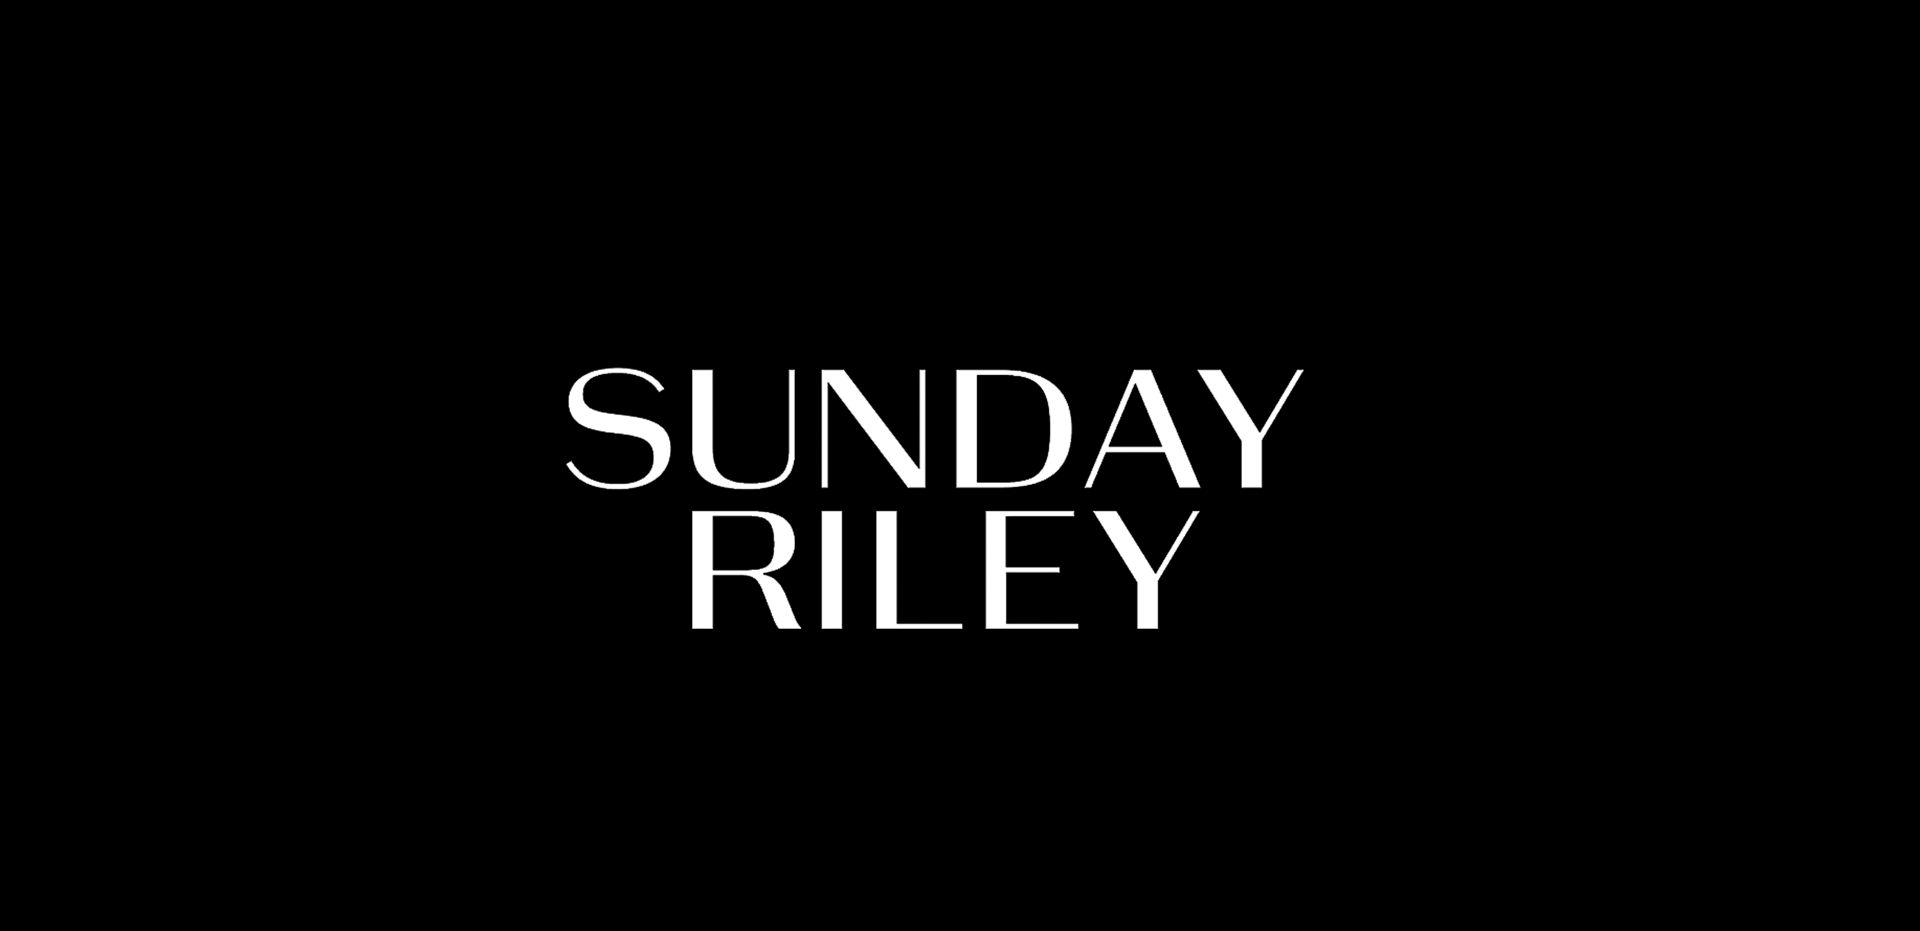 Cohorted, luxe, win, sunday riley, competition